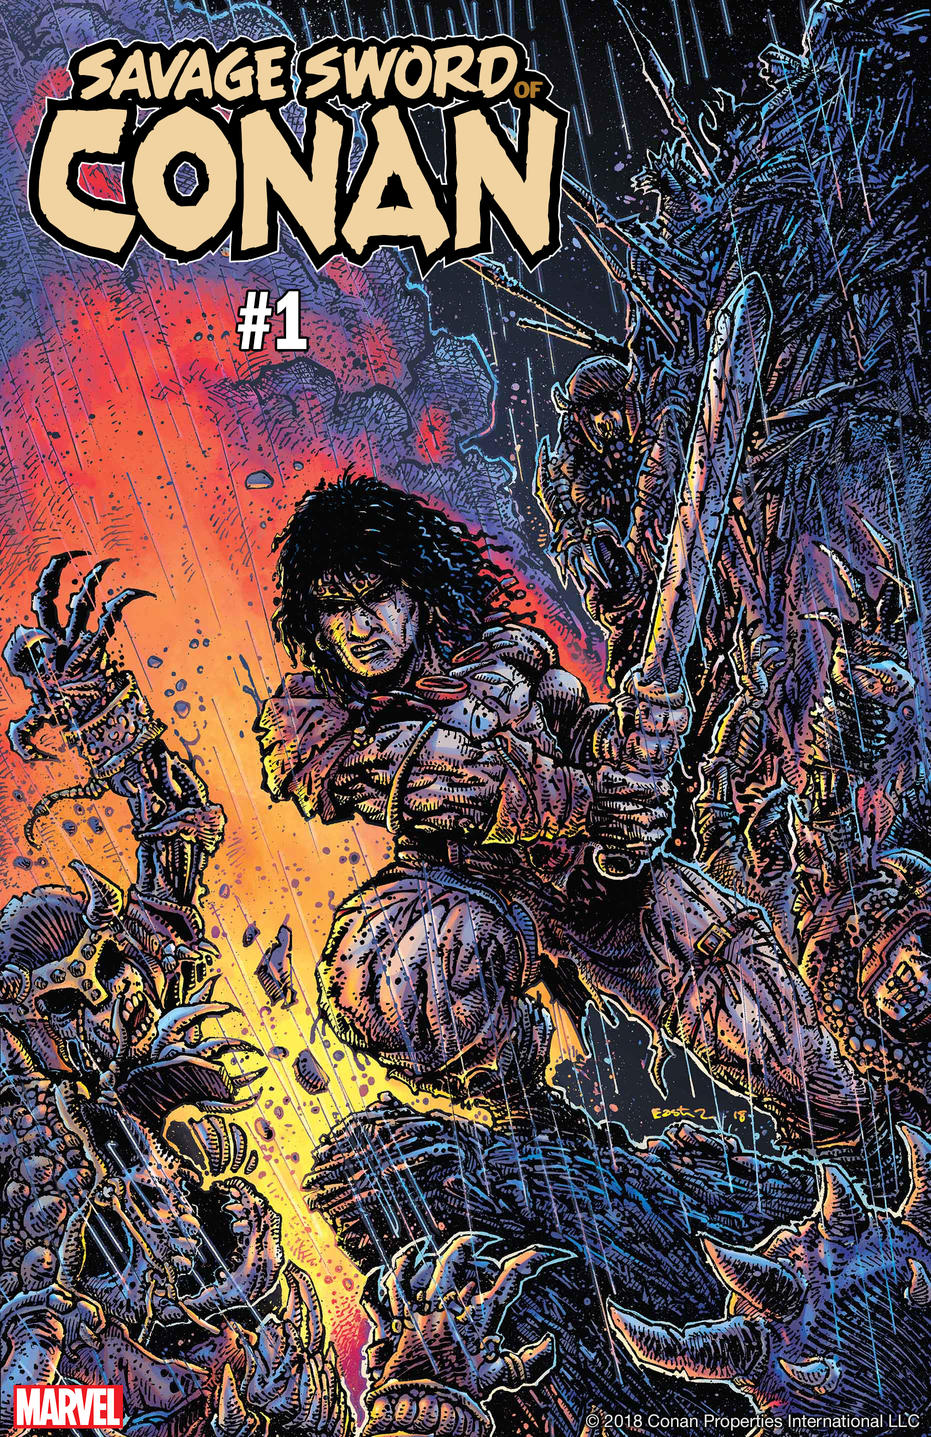 Savage Sword of Conan Cover by Kevin Eastman